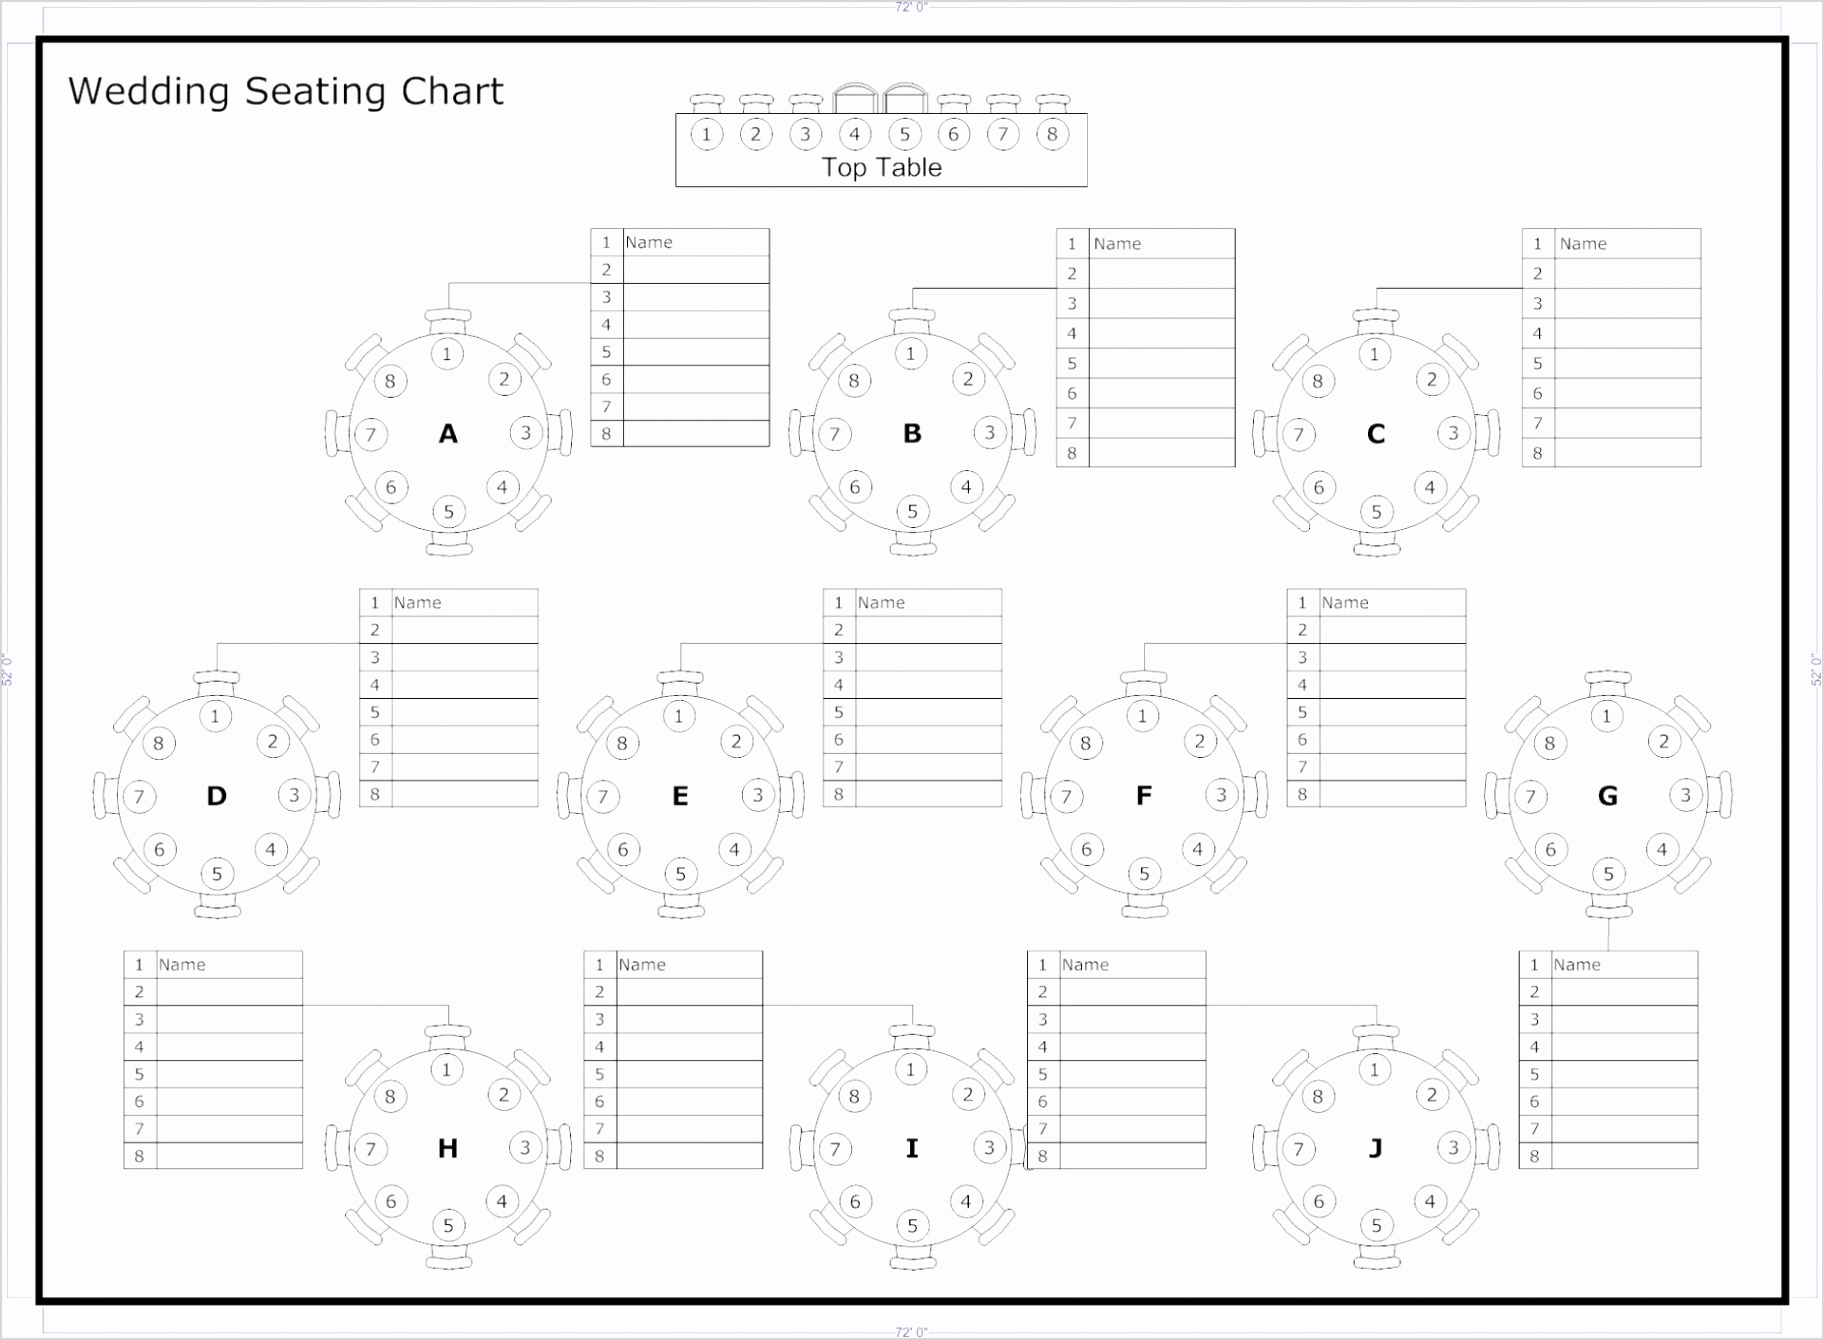 008 striking seating chart template excel inspirations 1920 1412